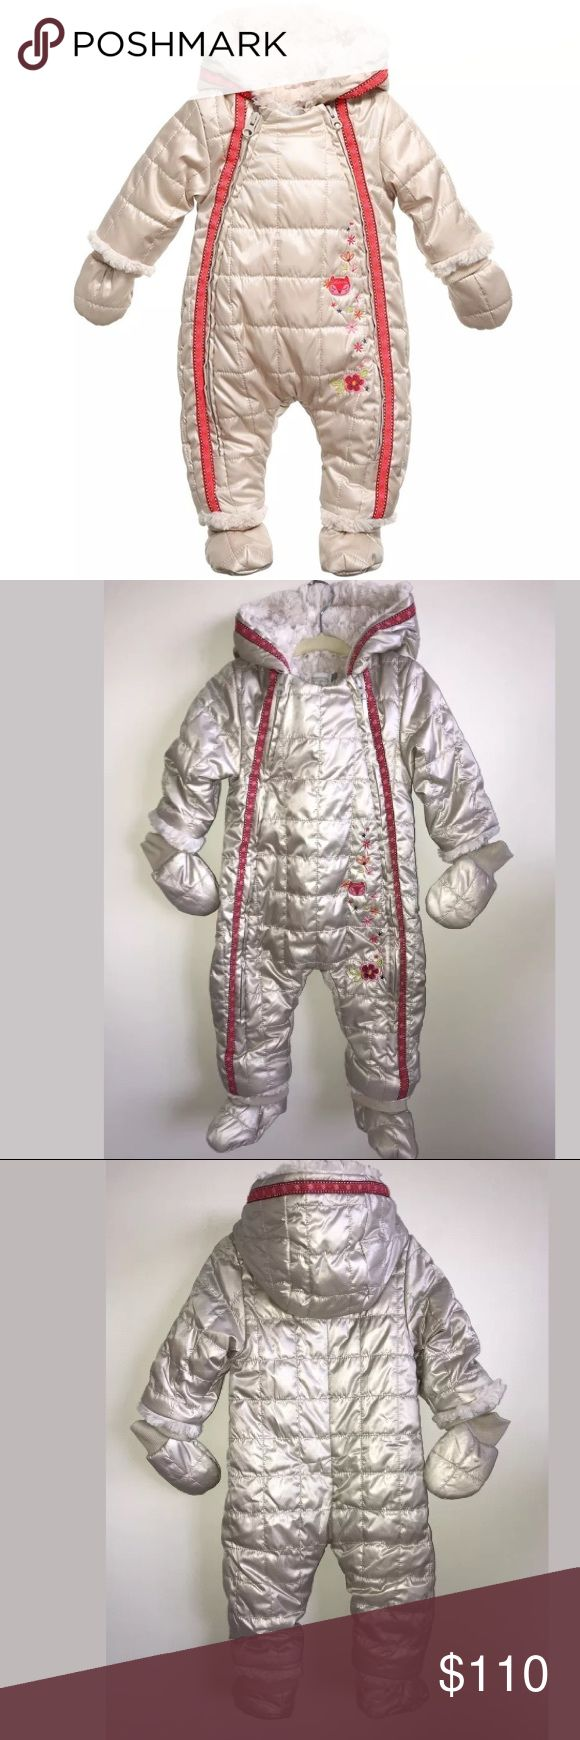 NWT Catimini snow suit baby 9 month shiny puffer New with tag Catimini Spirit snow suit size 9 month. Shiny metallic full suit with feet and gloves and hood. Soft fur lined. Bought at SAKS, never used still w tags. Catimini Jackets & Coats Puffers